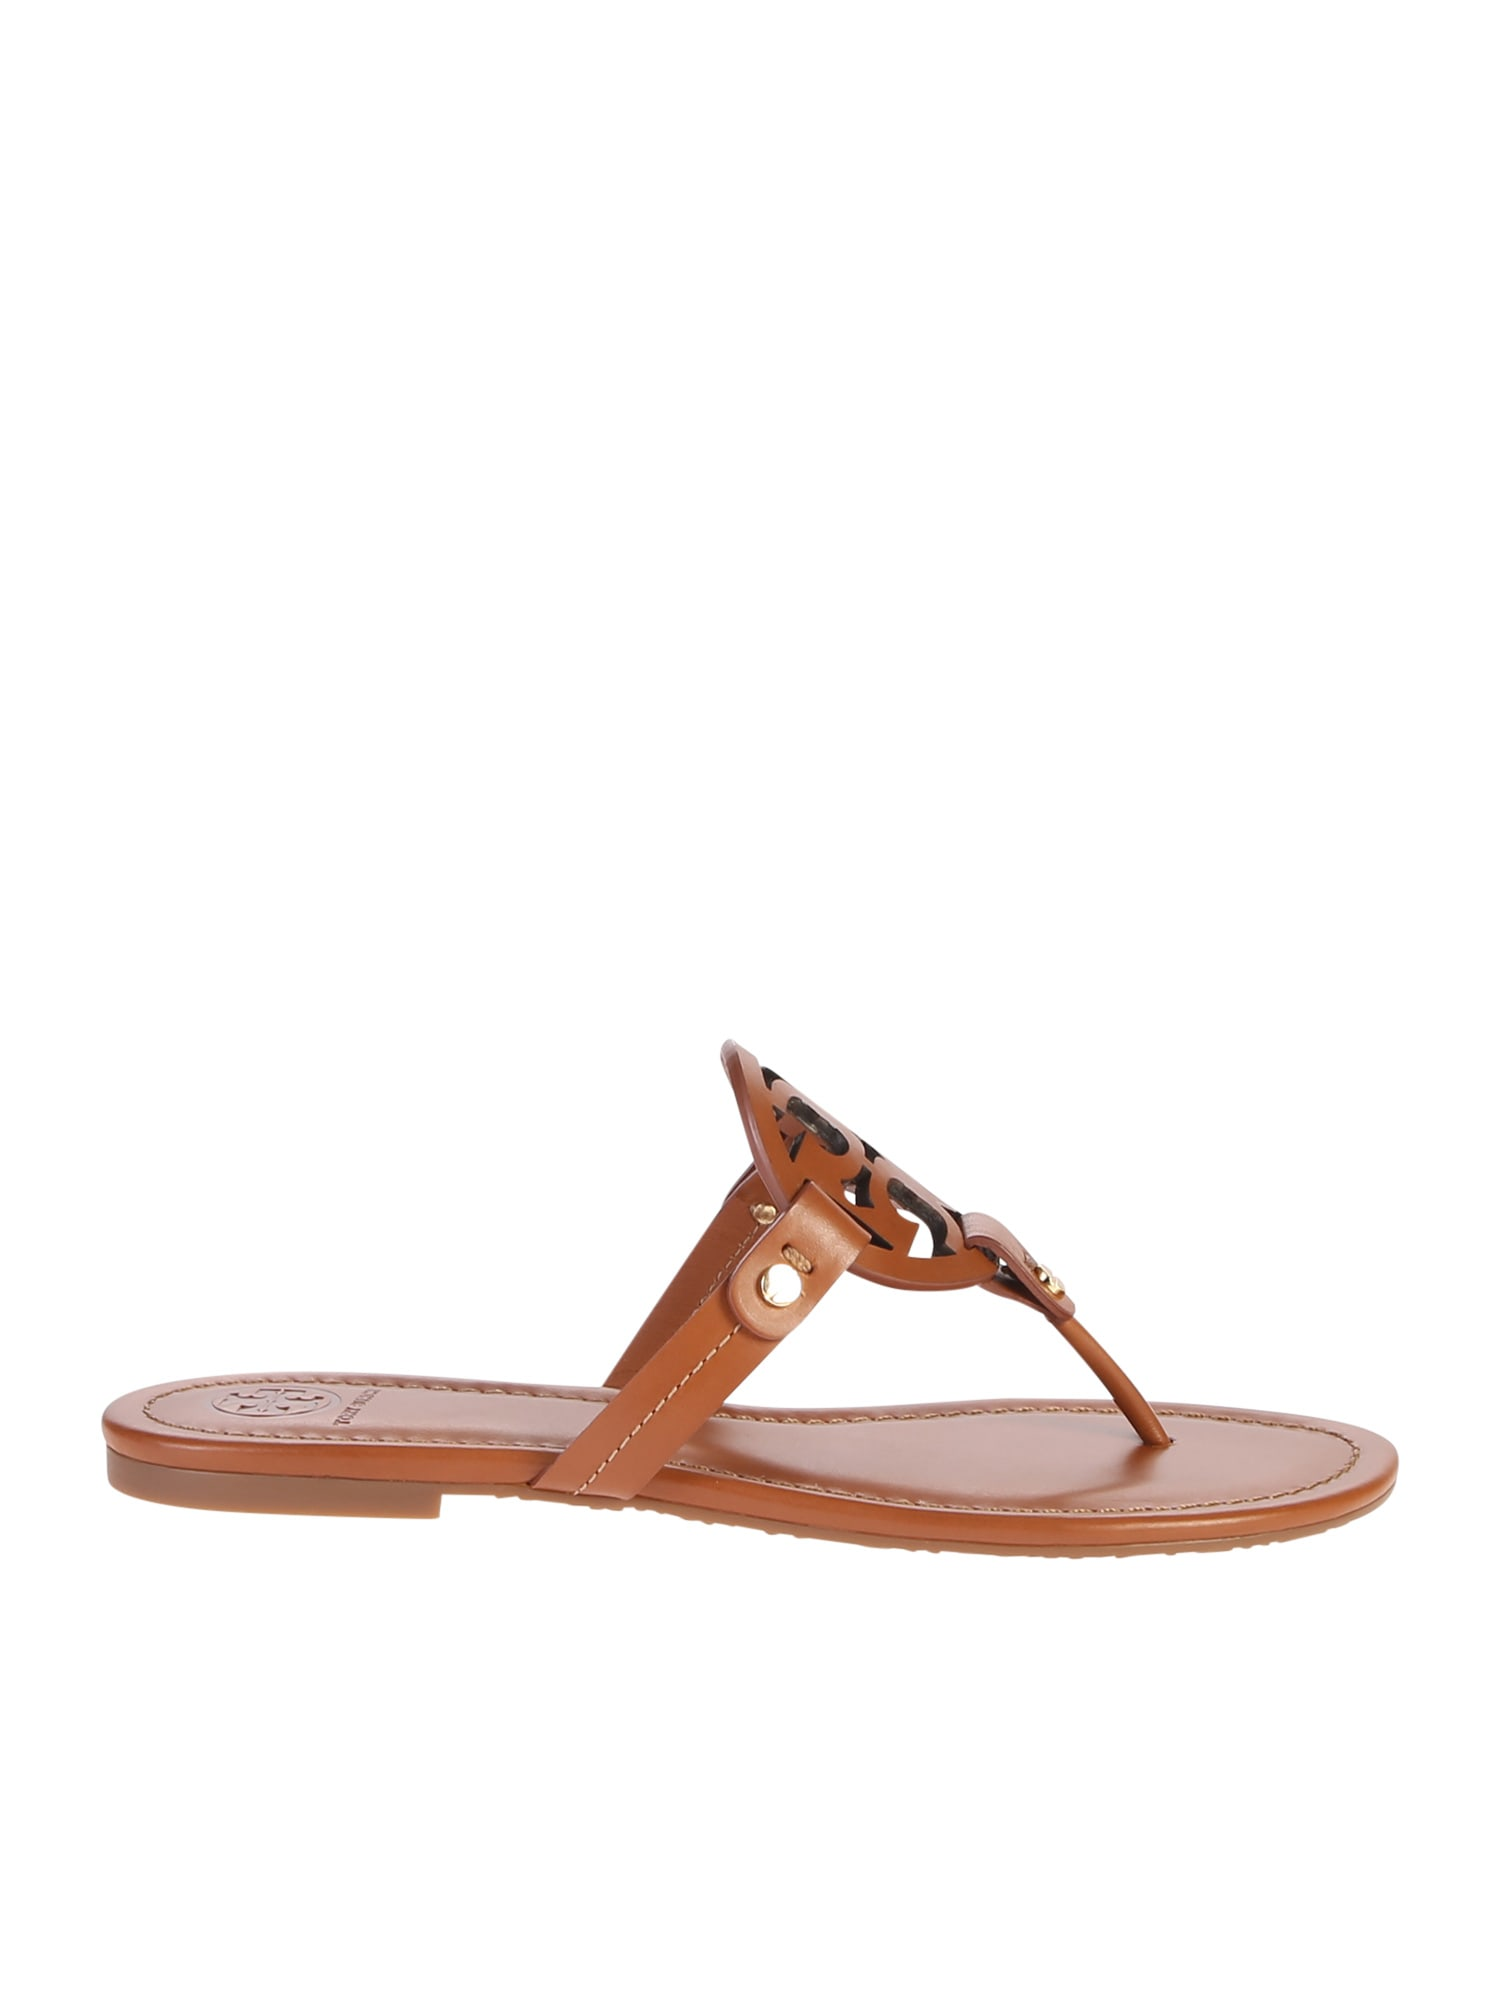 Buy Tory Burch Brown Miller Sandals online, shop Tory Burch shoes with free shipping